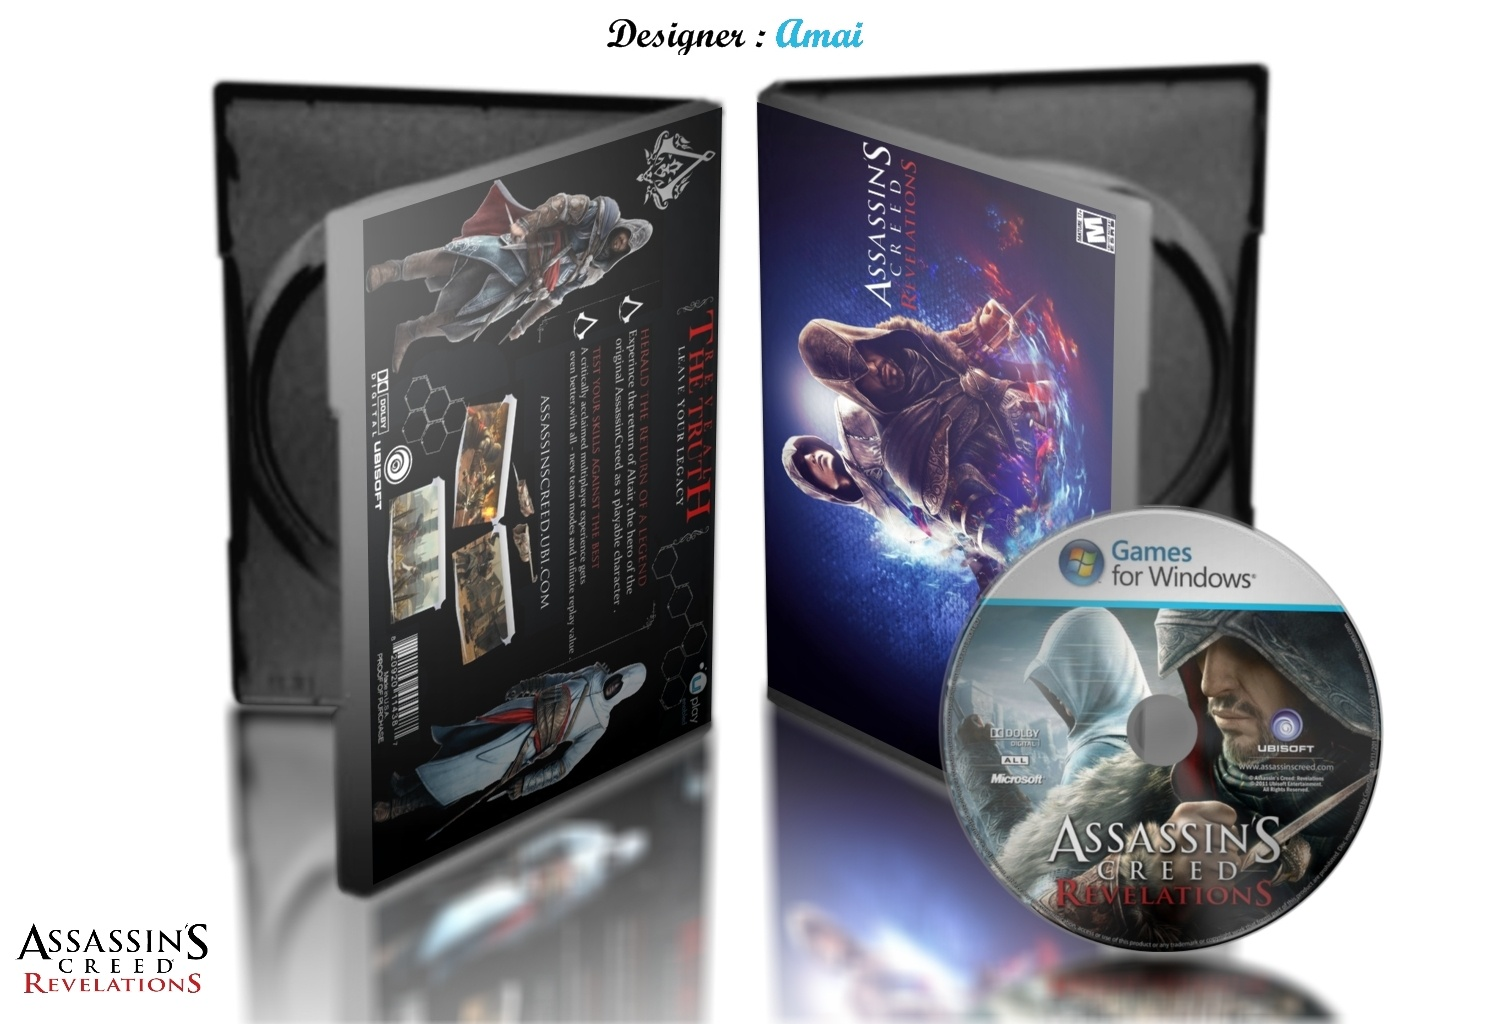 Assassin's Creed Revelations box cover